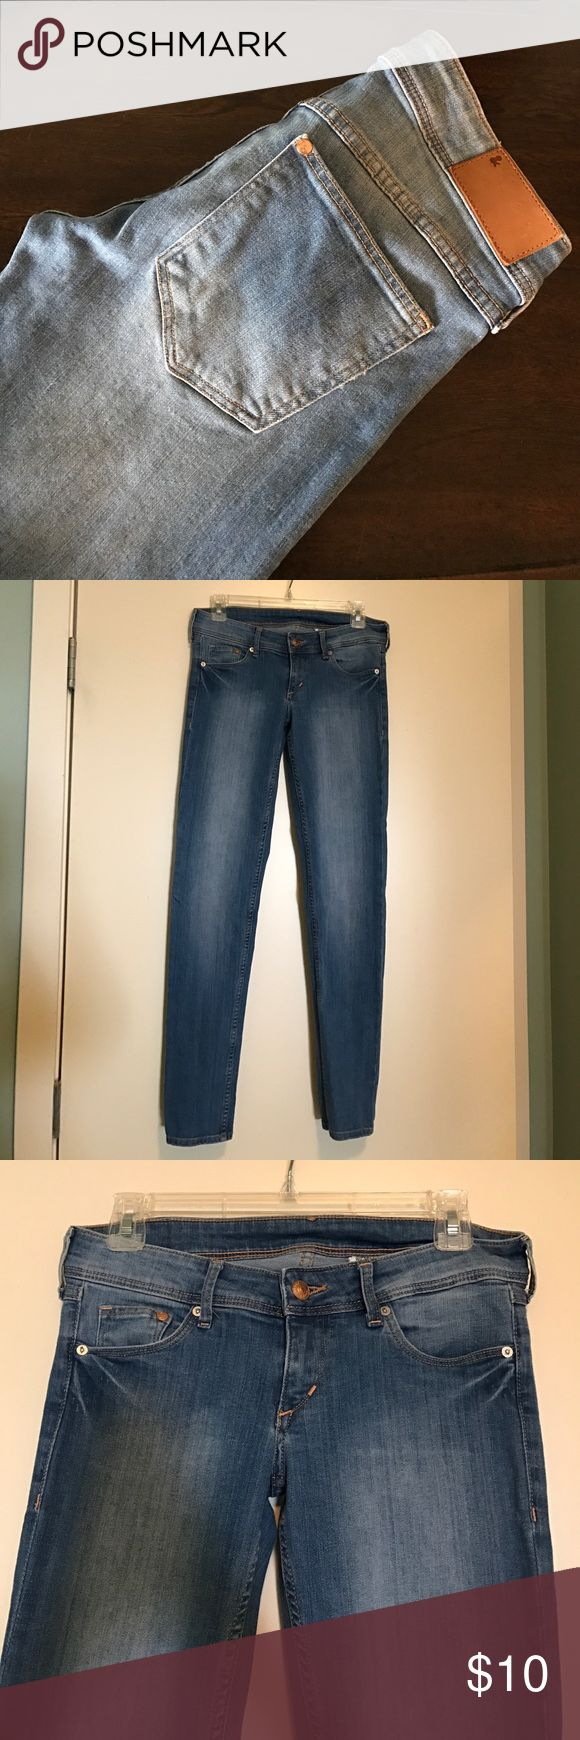 """H&M Super Low Super Skinny Light Wash Jeans 28/30 Women's H&M Super Low Super Skinny Light Wash Jeans Size 28/30. In great condition. Inseam measures approximately 30"""". H&M Jeans Skinny"""